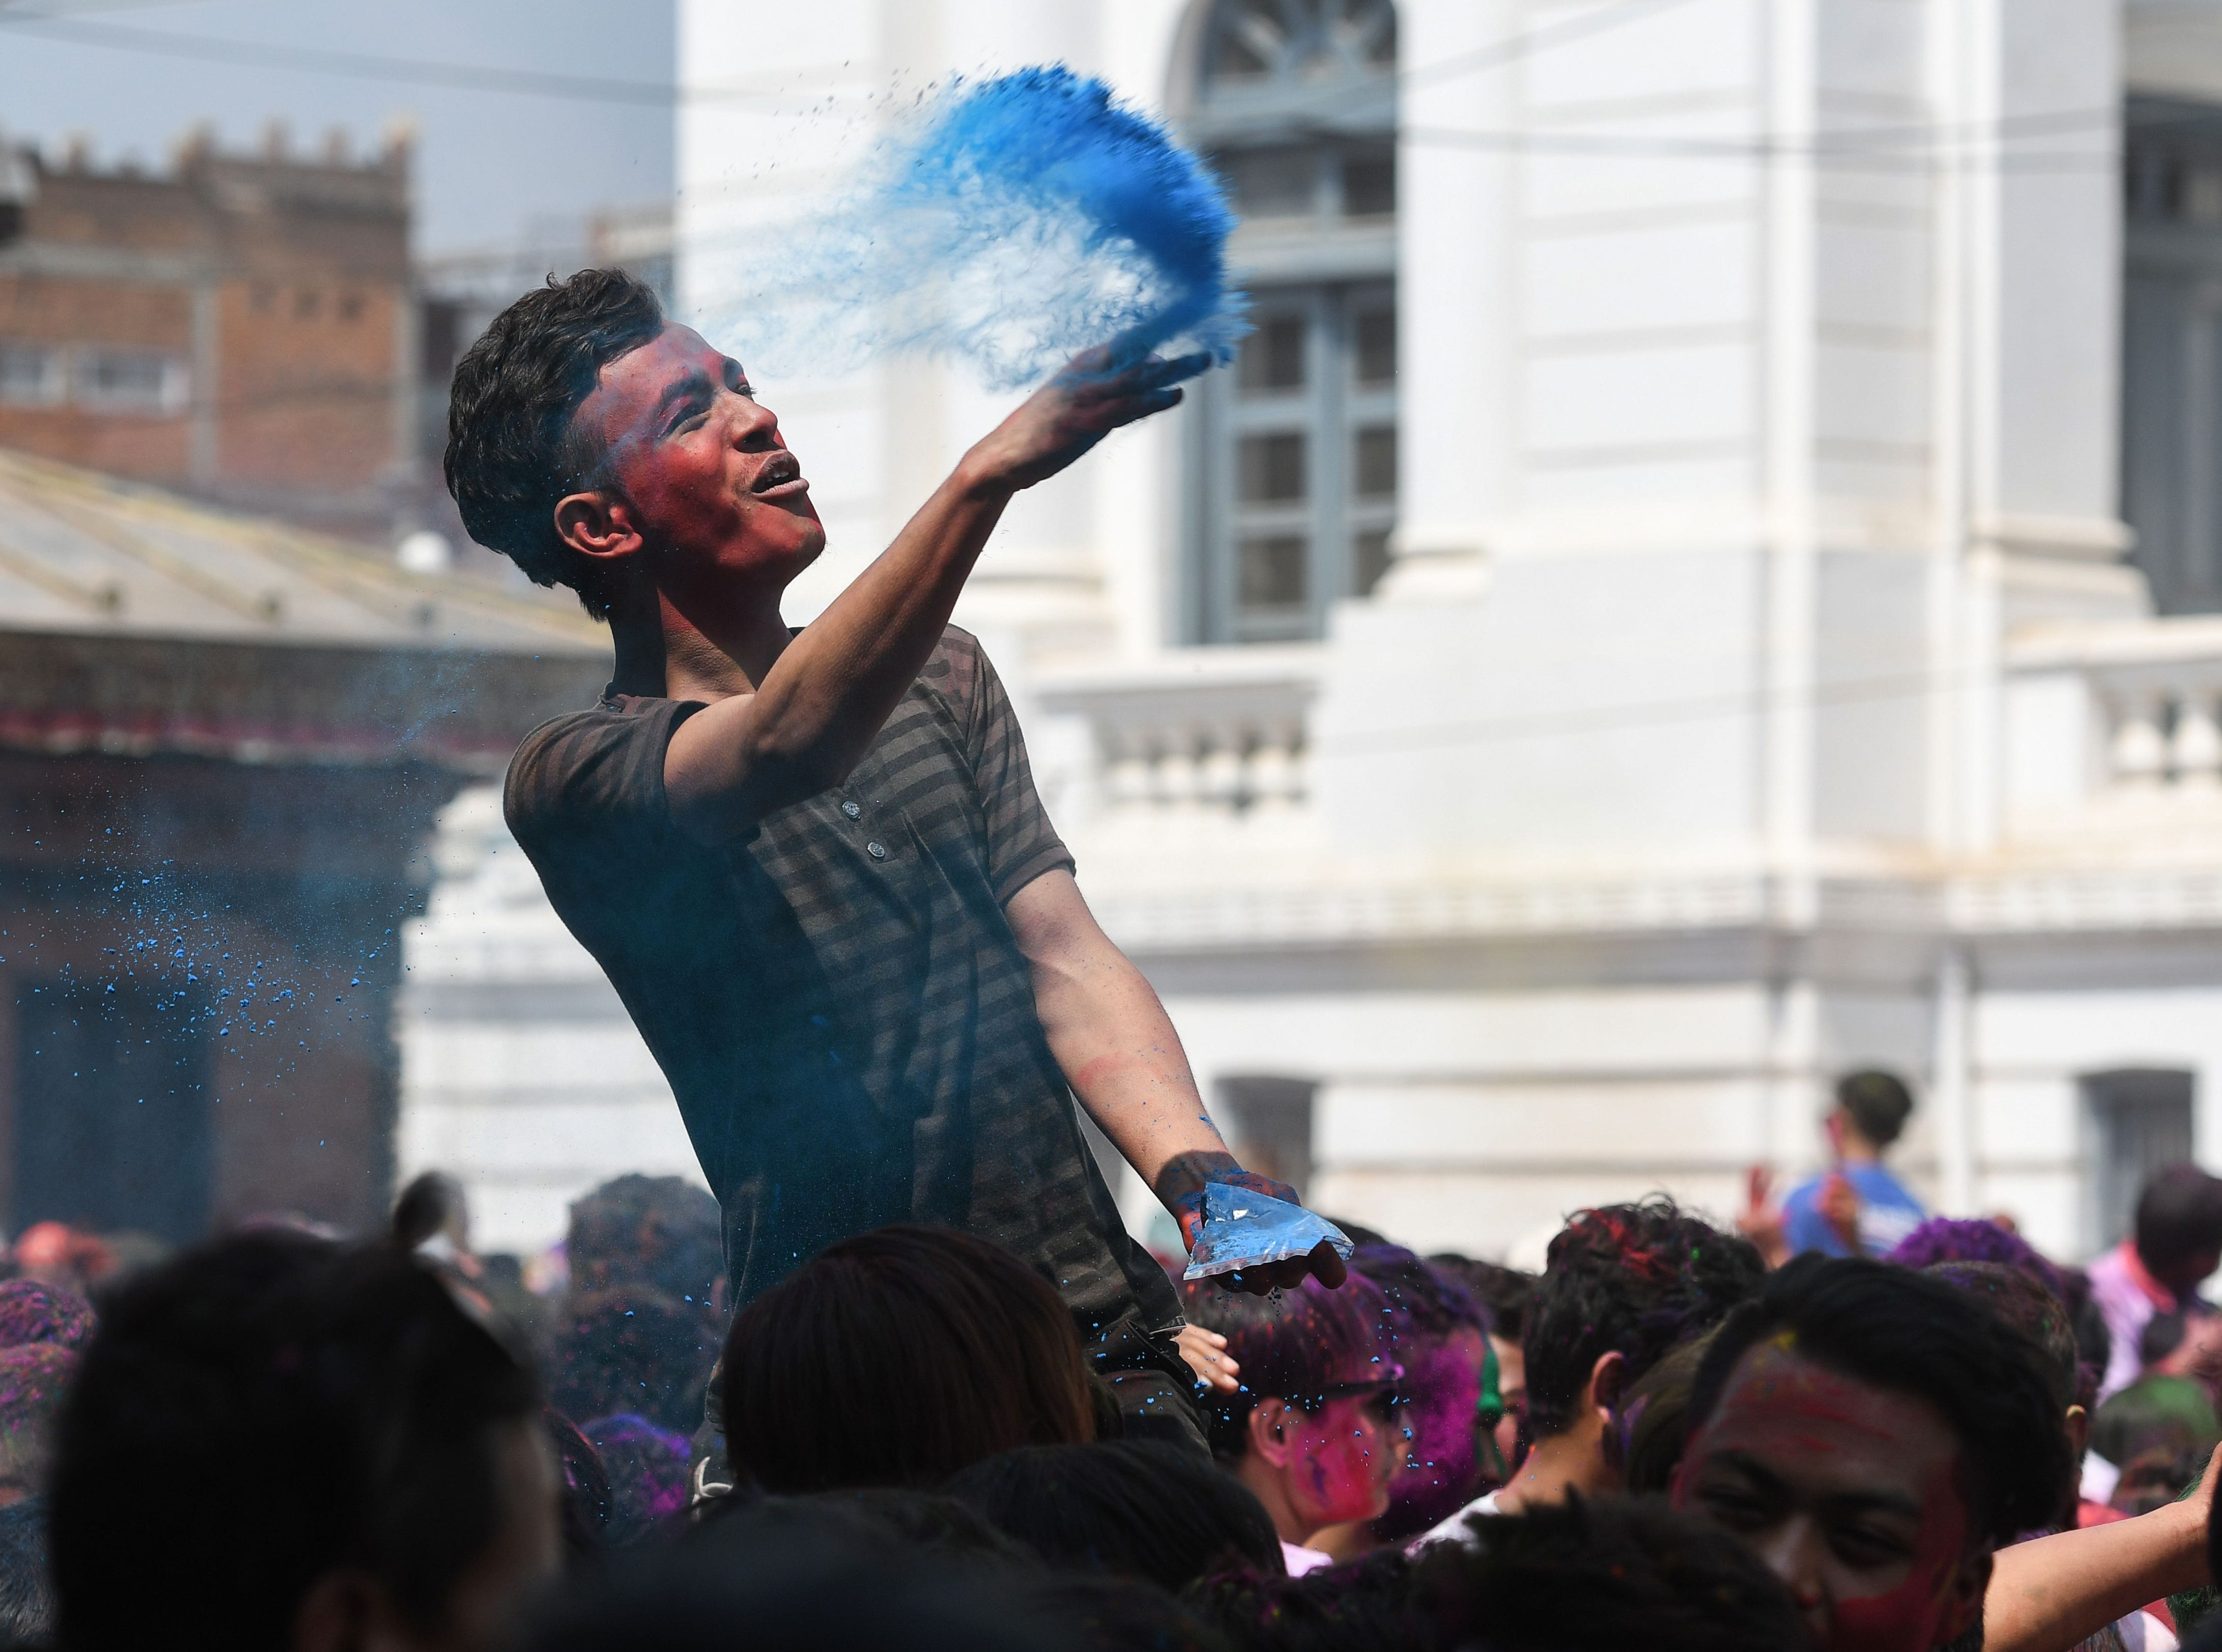 A Nepali reveler throws colored powder during the celebration of the Holi festival in Kathmandu on March 20, 2019.